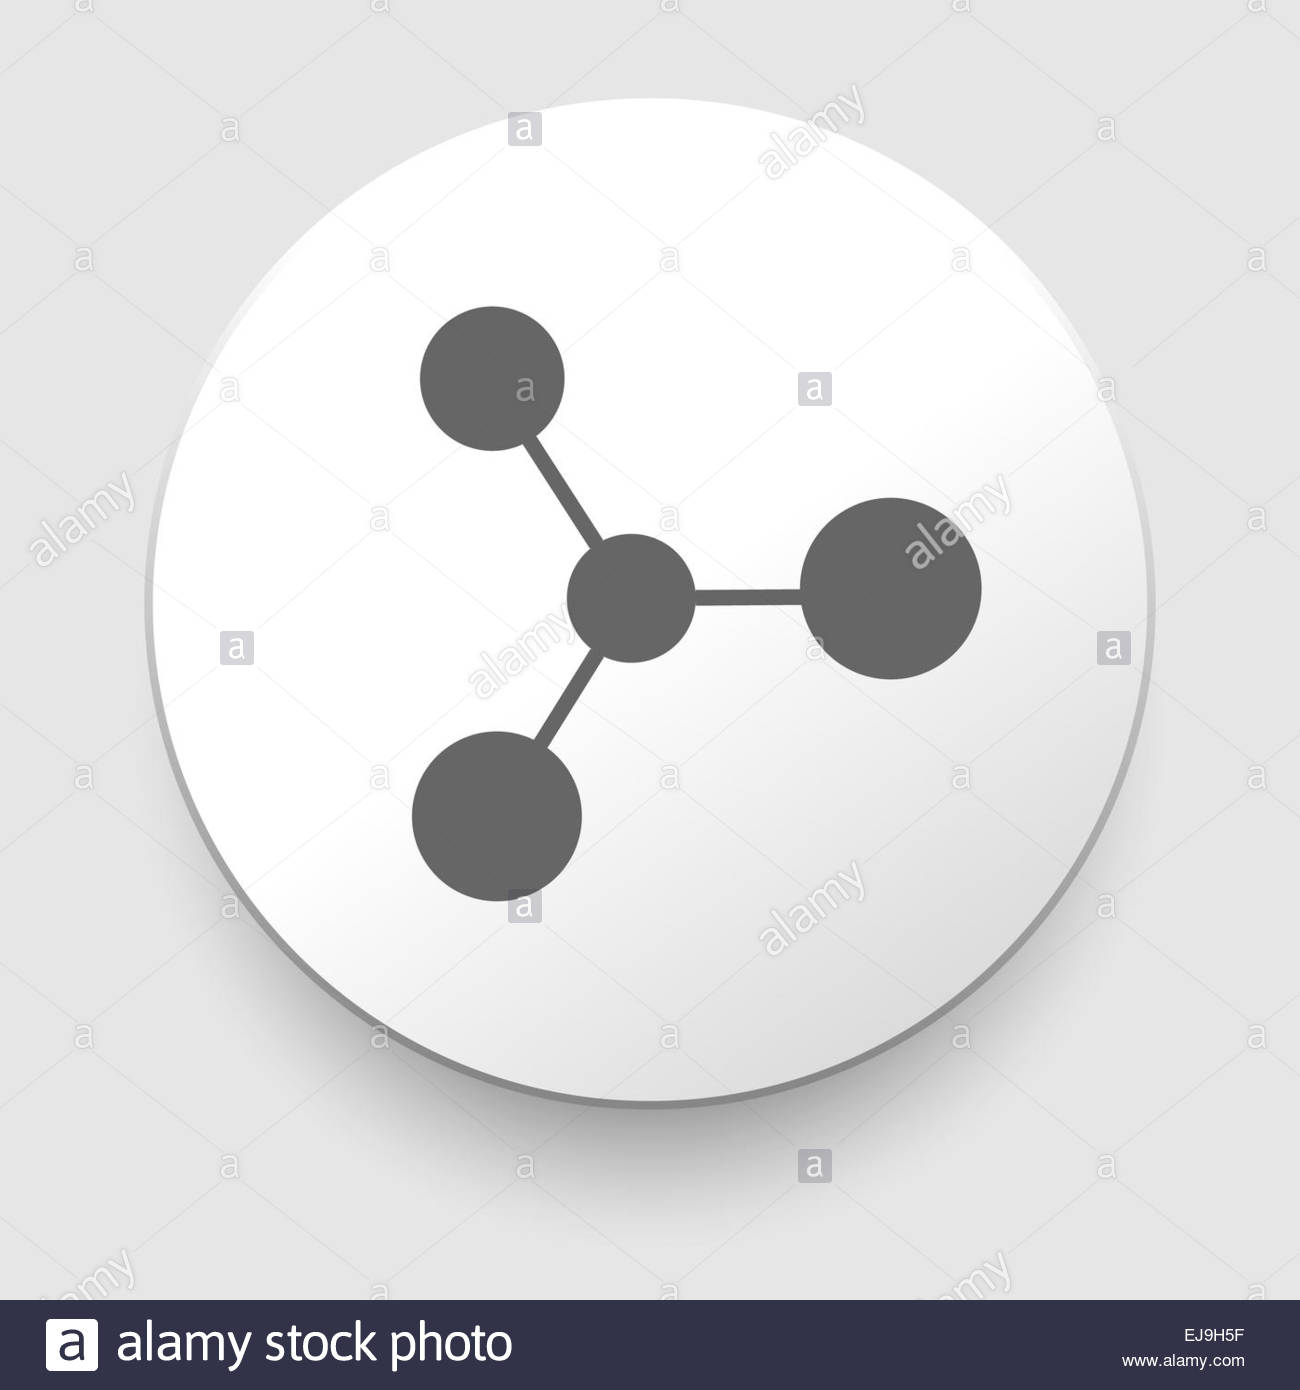 Water Molecule Diagram Black And White.Water Molecule Black And White Stock Photos Images Alamy